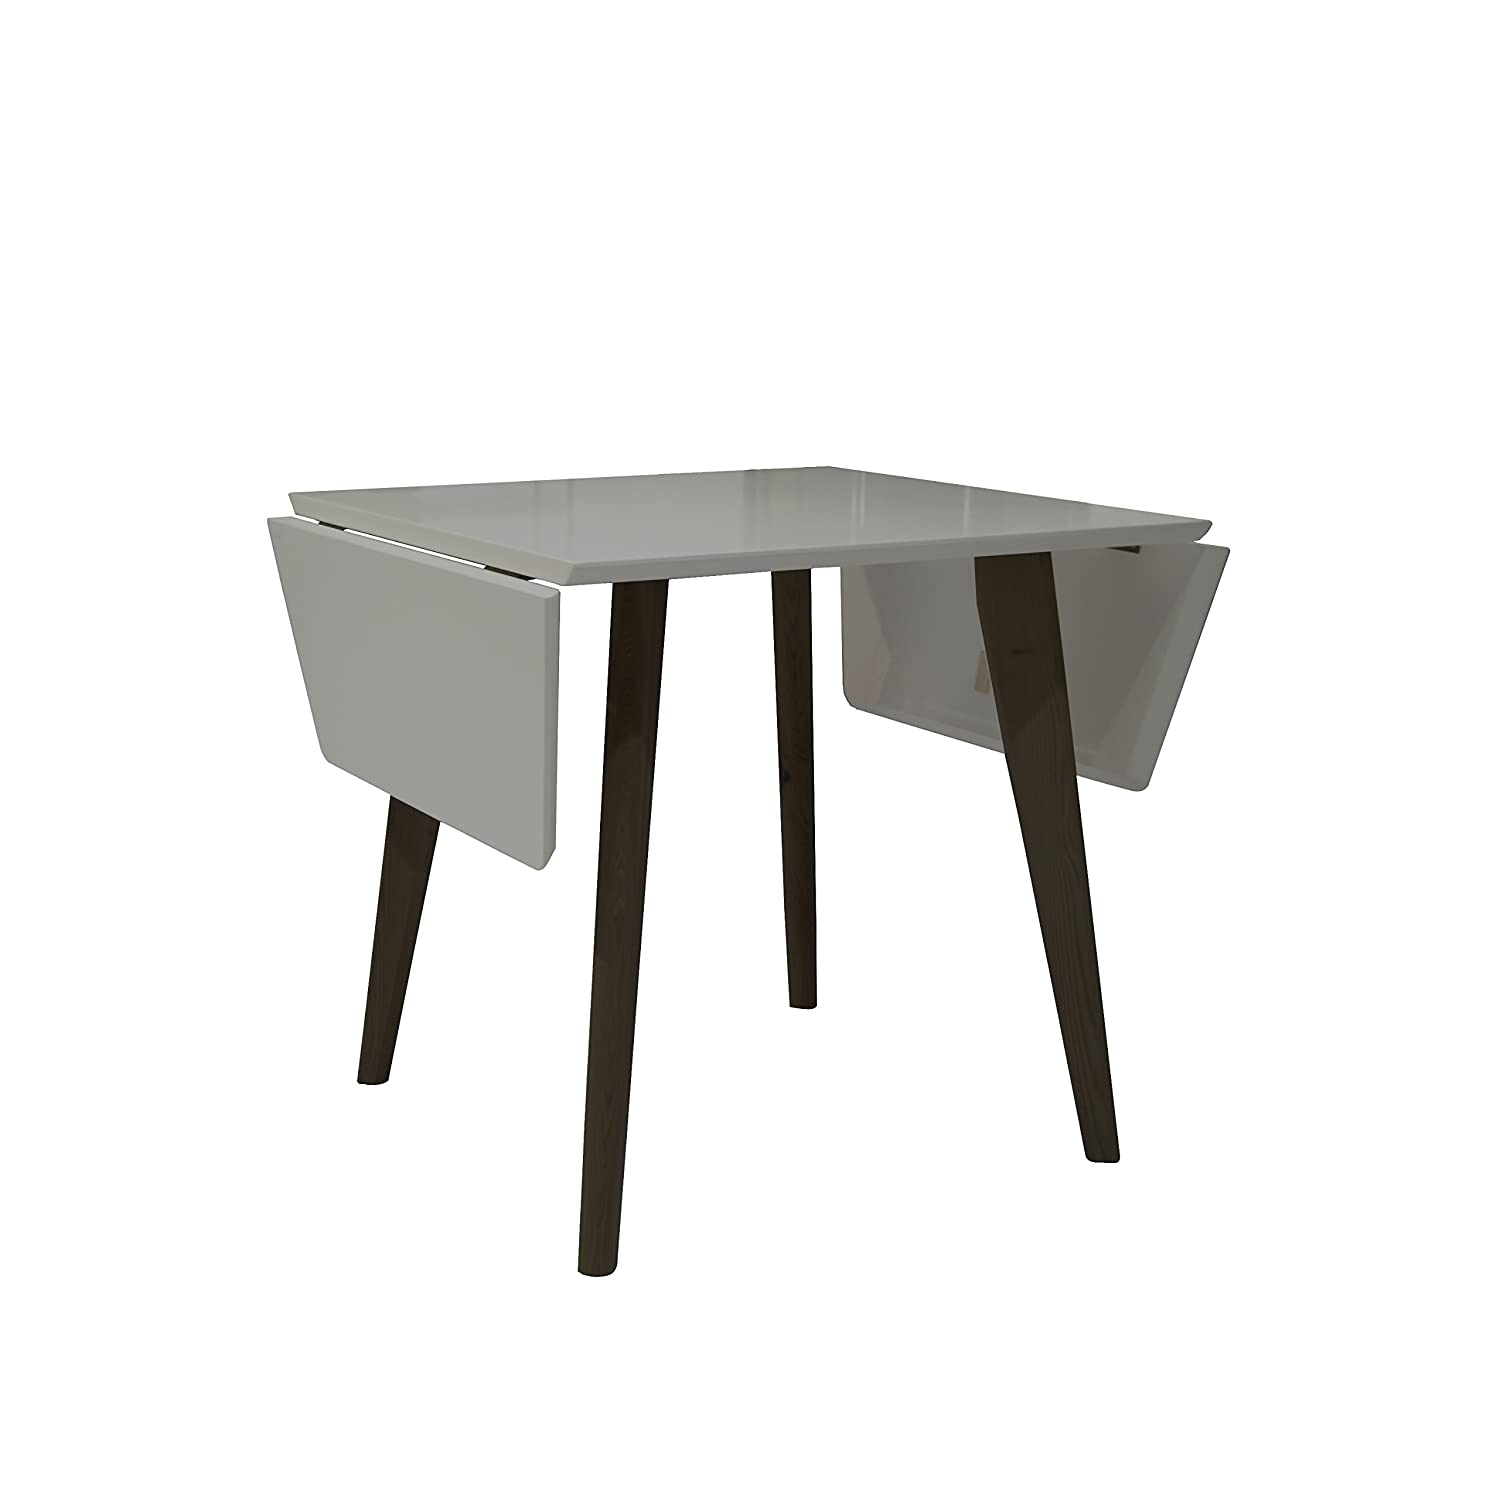 NPET Extendable Dining Table Mid-Century Modern Matte Gray and Black Oak Indoor Table, Double Drop Leaf Design